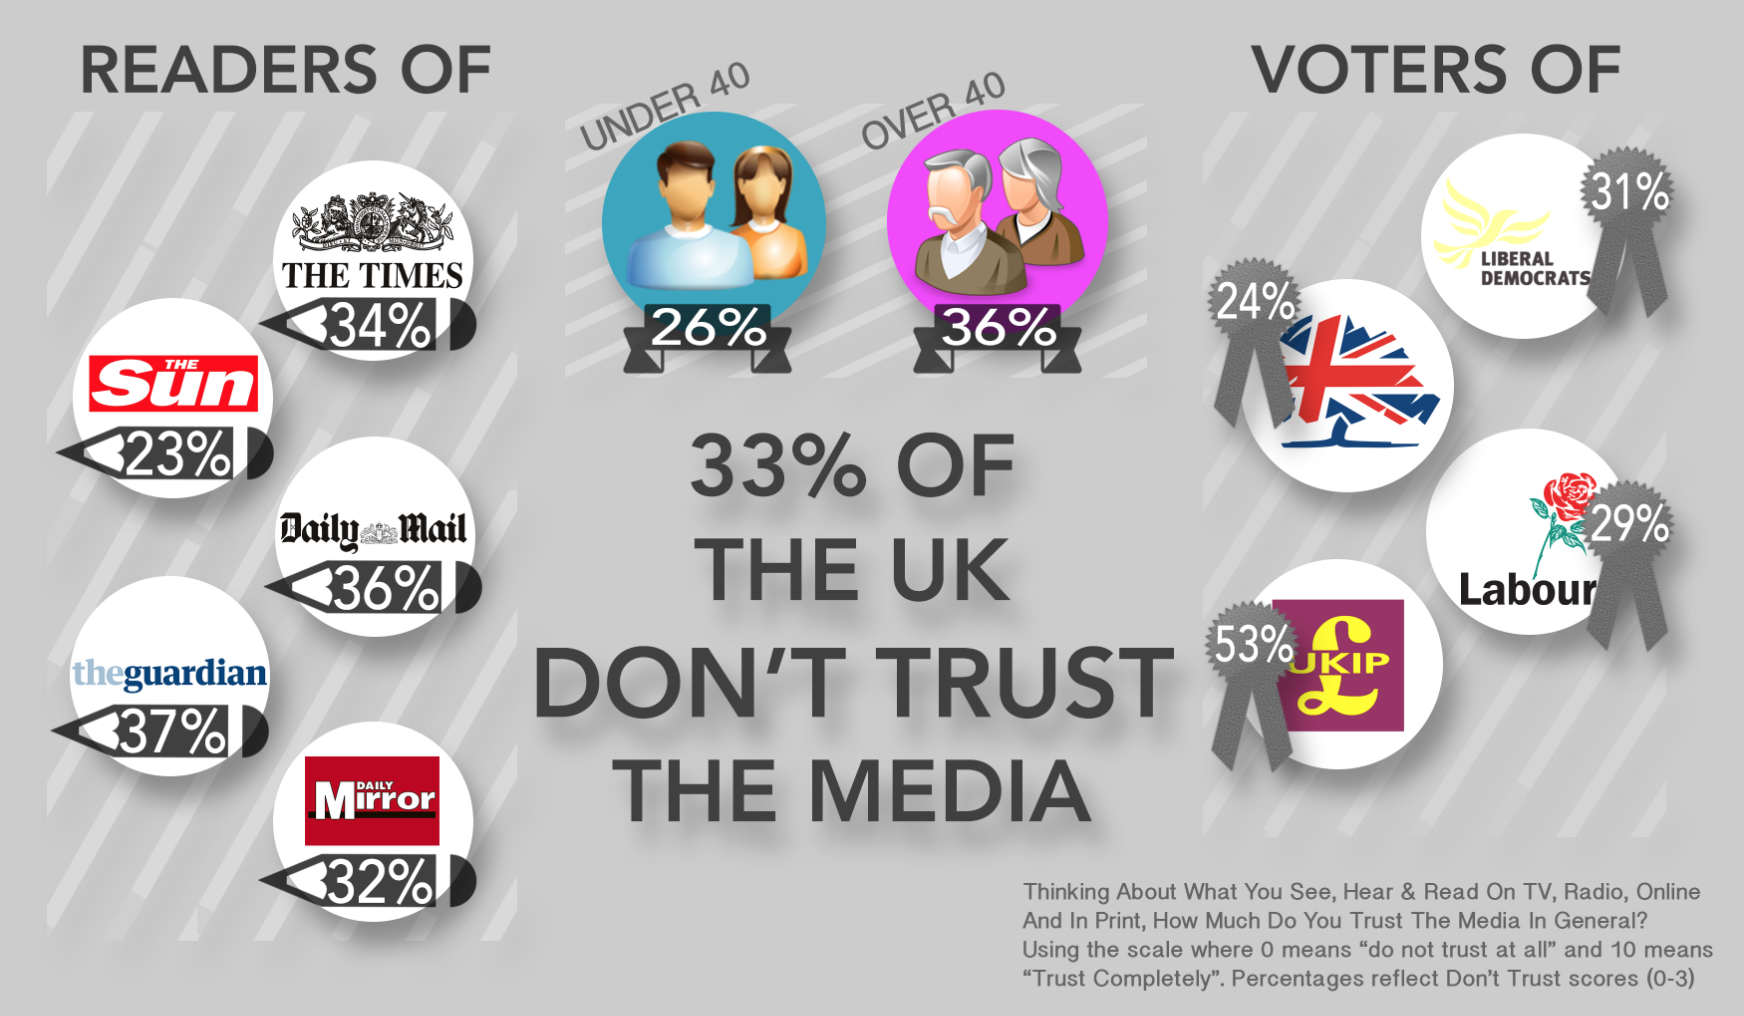 More than half of Ukippers distrust the media.